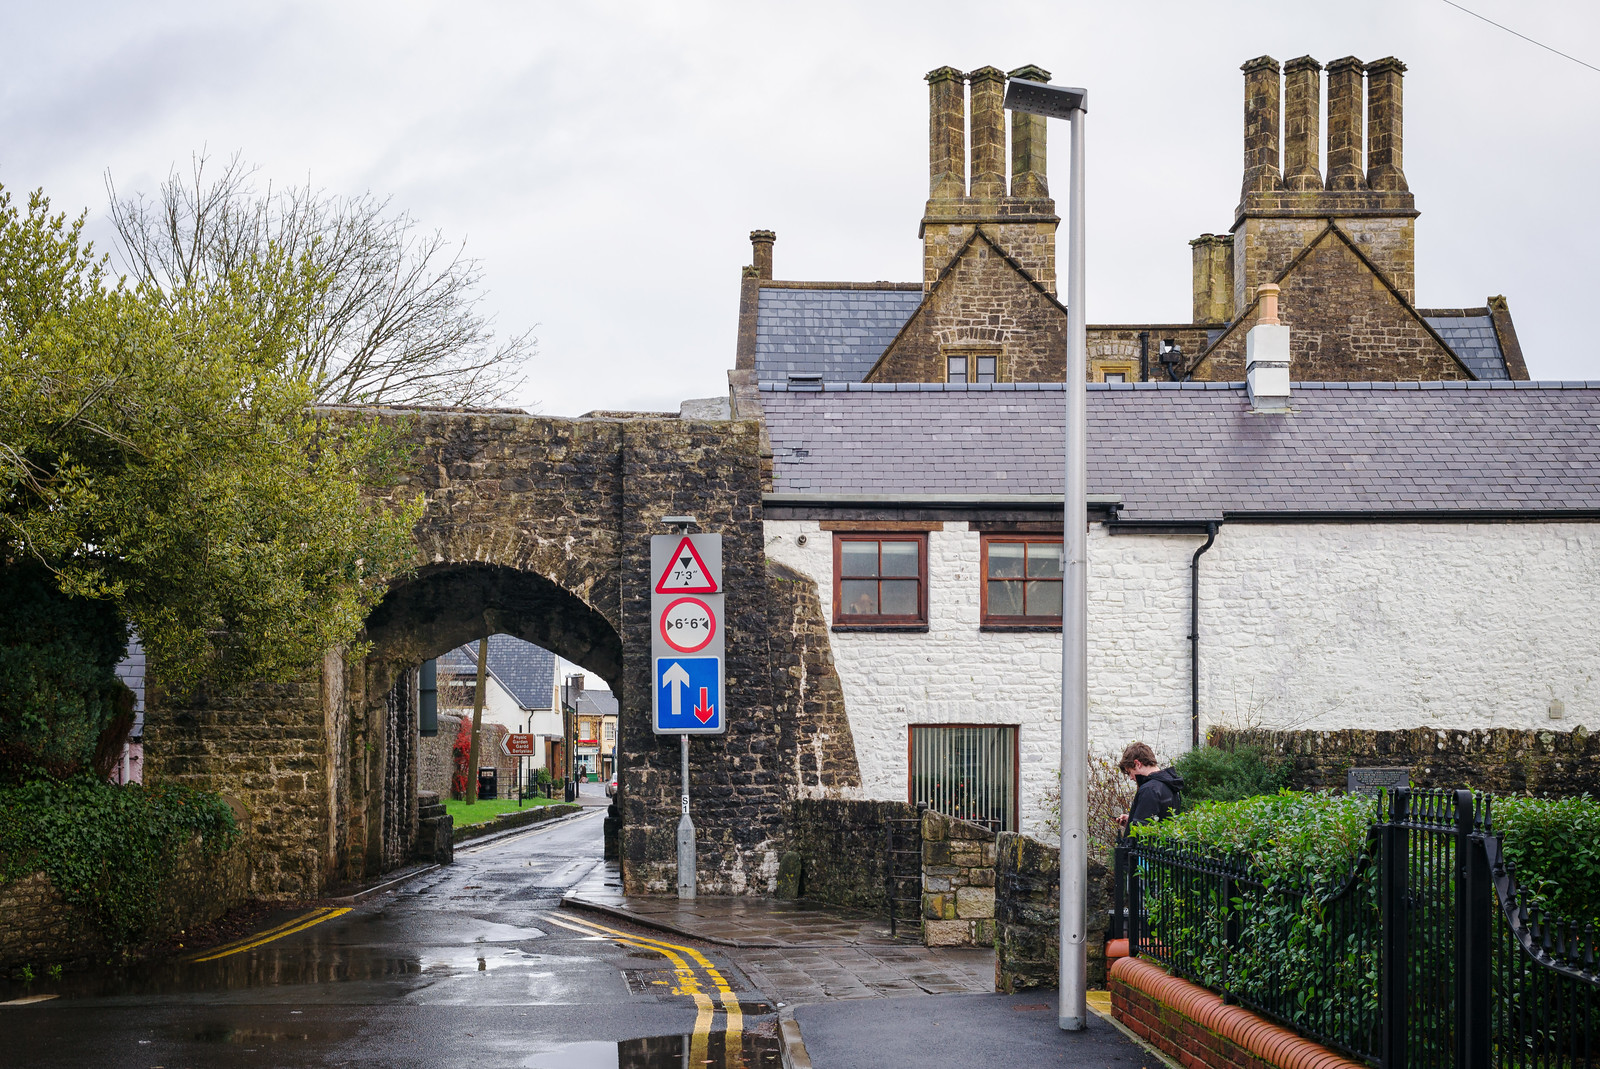 South Gate and Old Grammar School